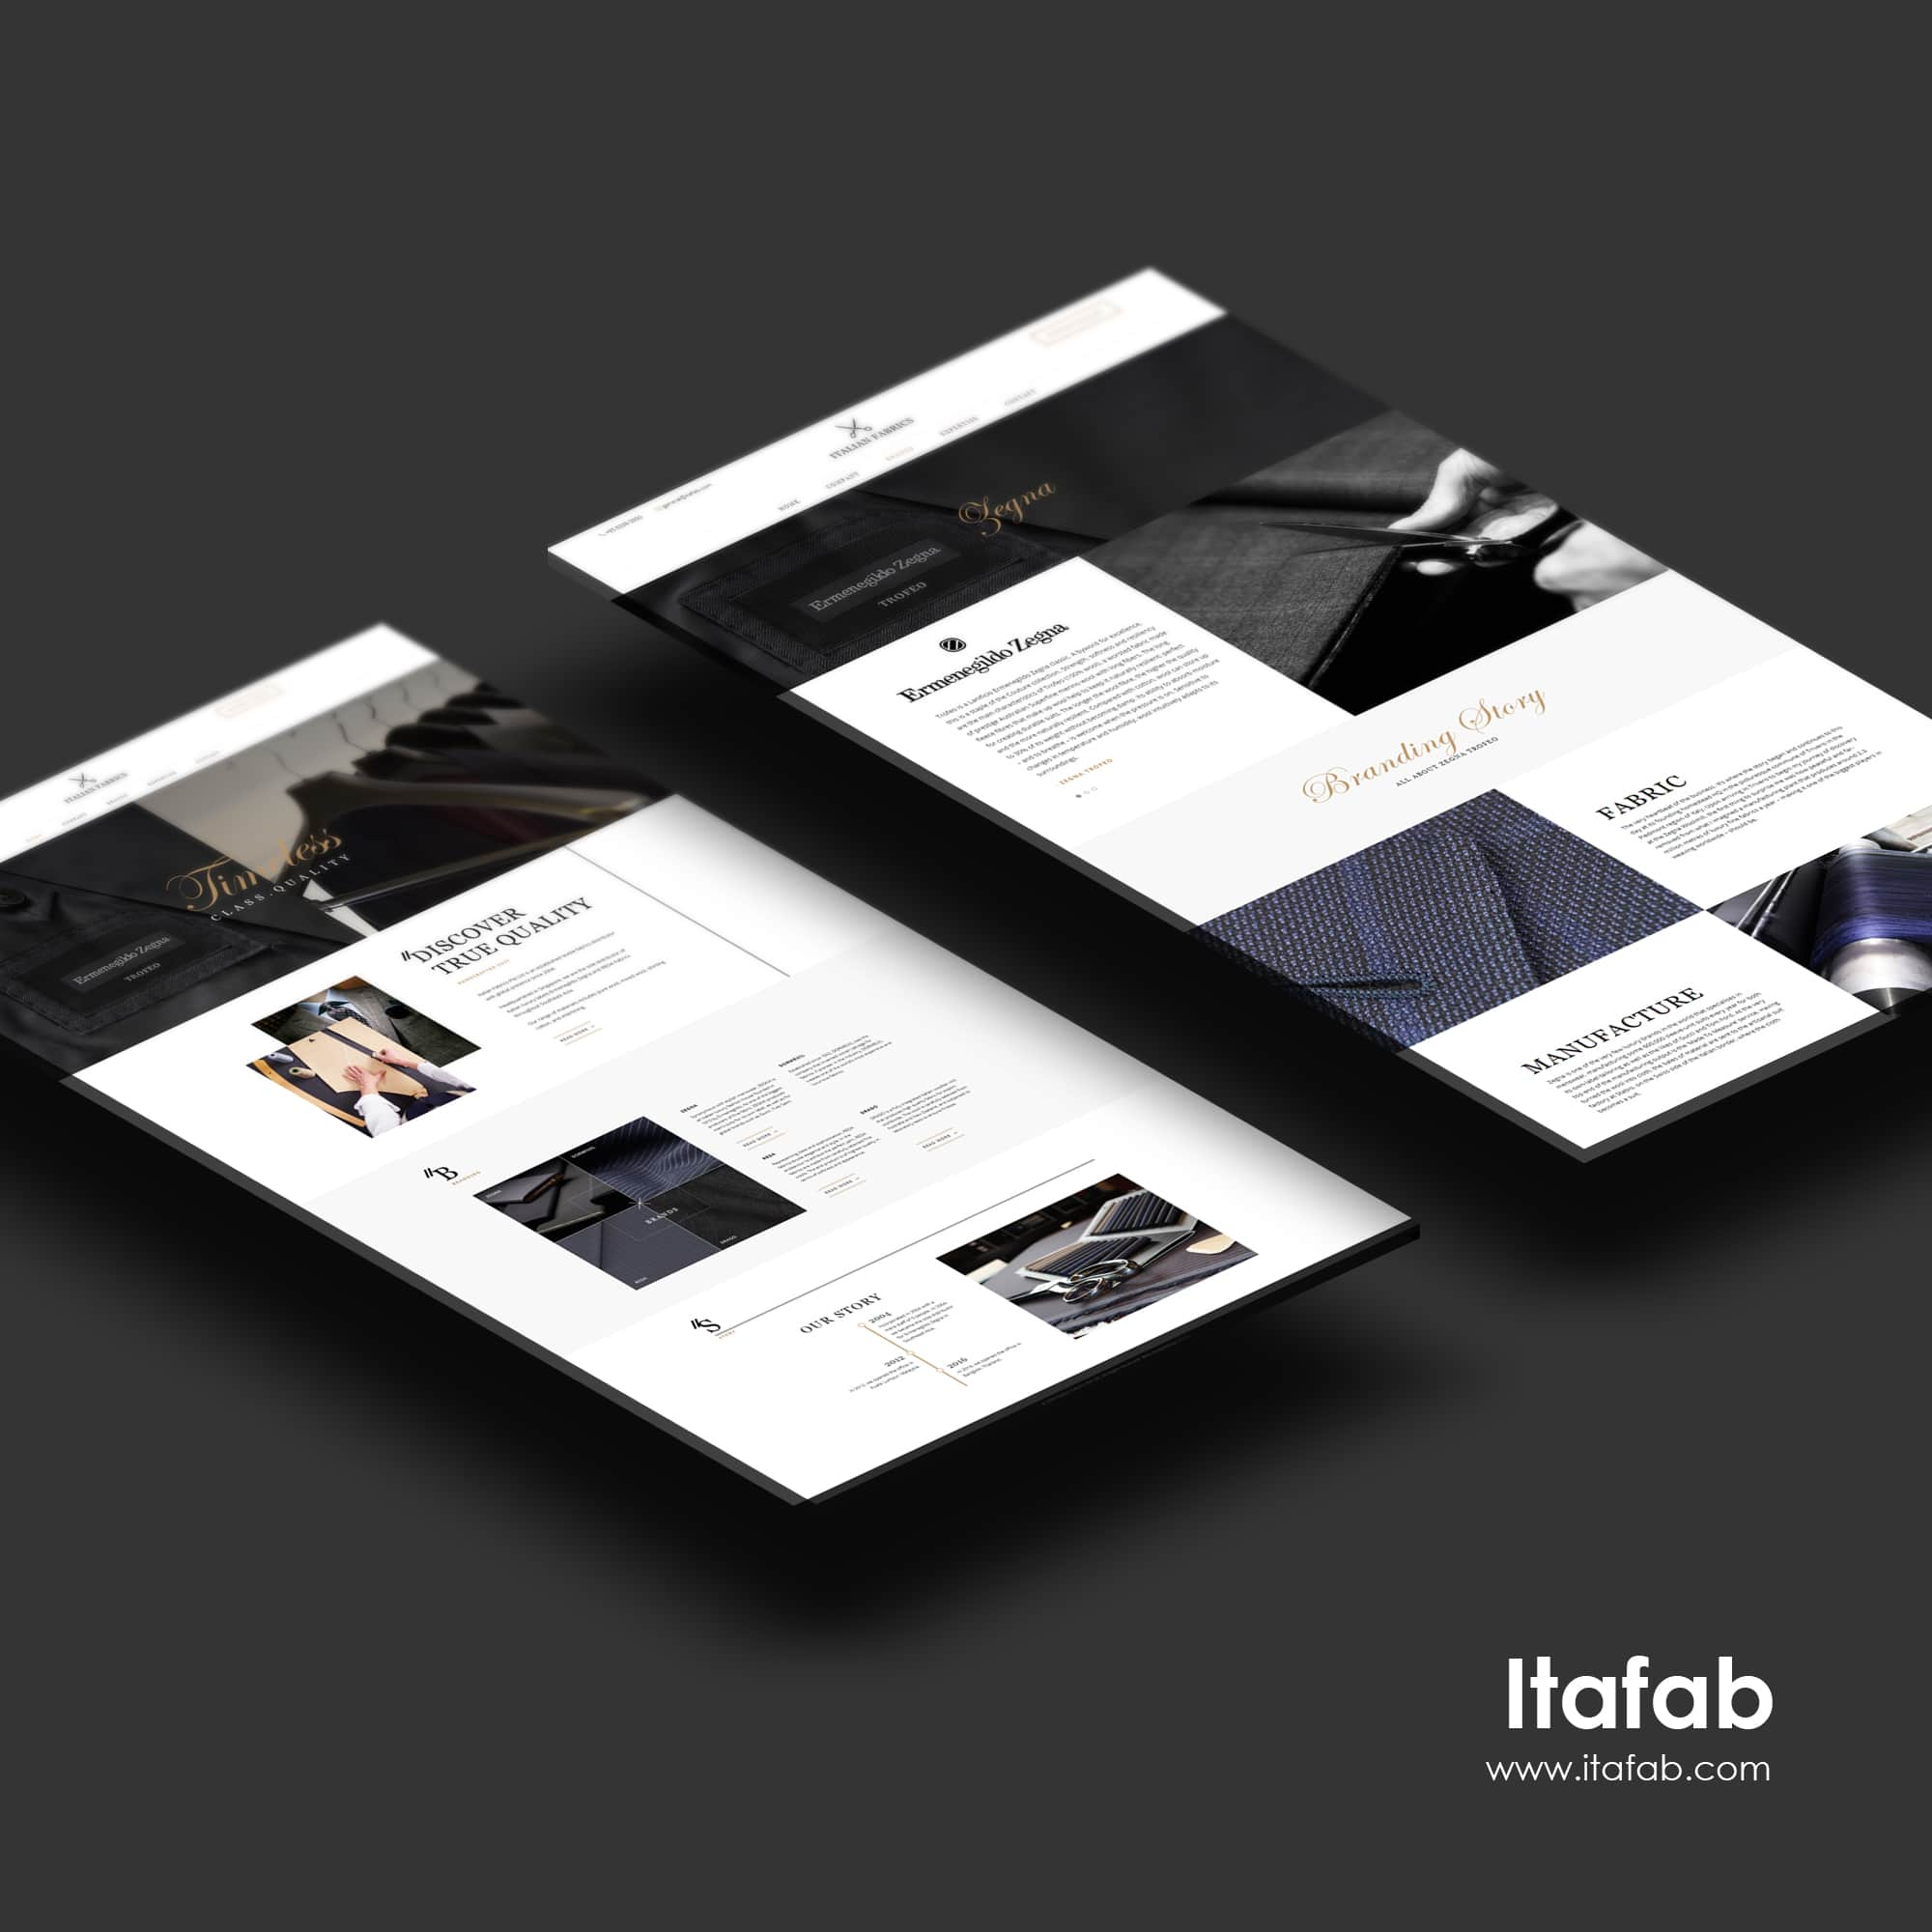 Singapore best web design itafab web design